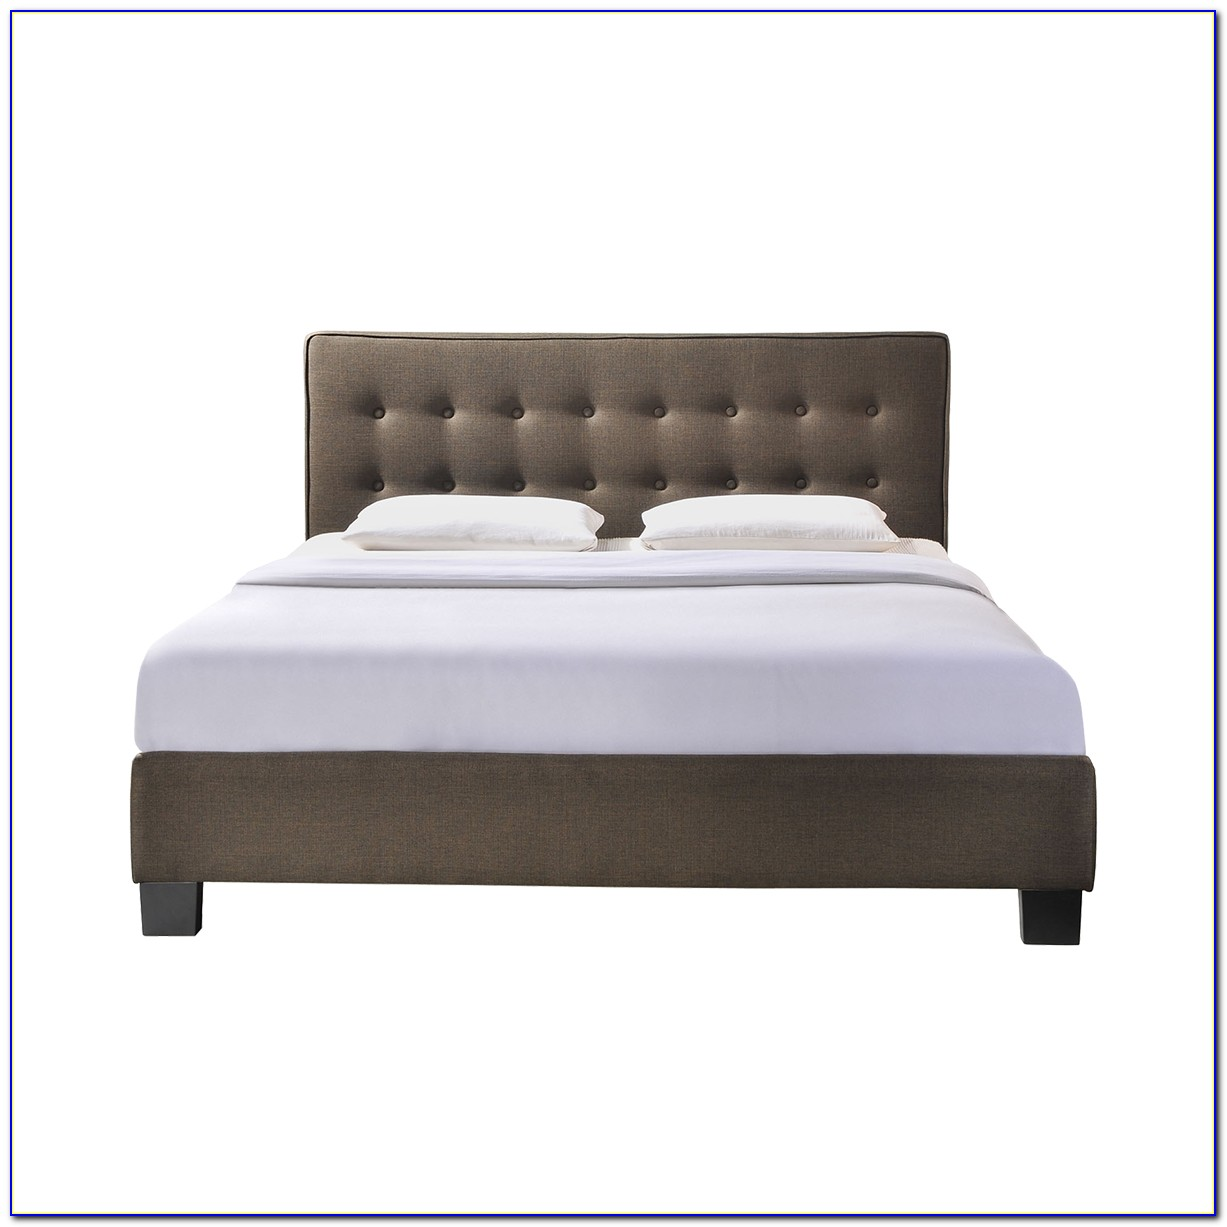 Queen Bed Frame With Headboard Ikea